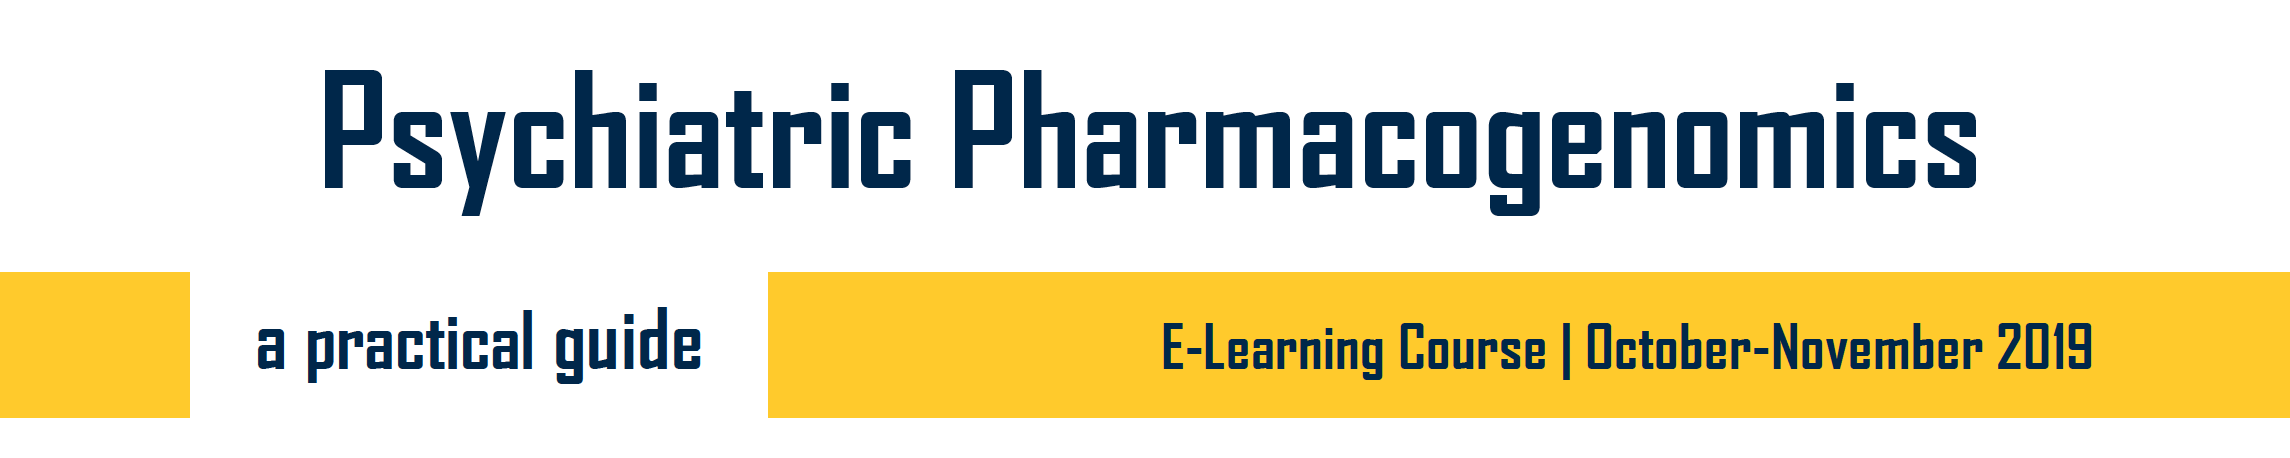 Psychiatric Pharmacogenomics: A Practical Guide to Gene-Drug Interactions and Tests (Mon, 10/28/19 - Mon, 11/25/19)